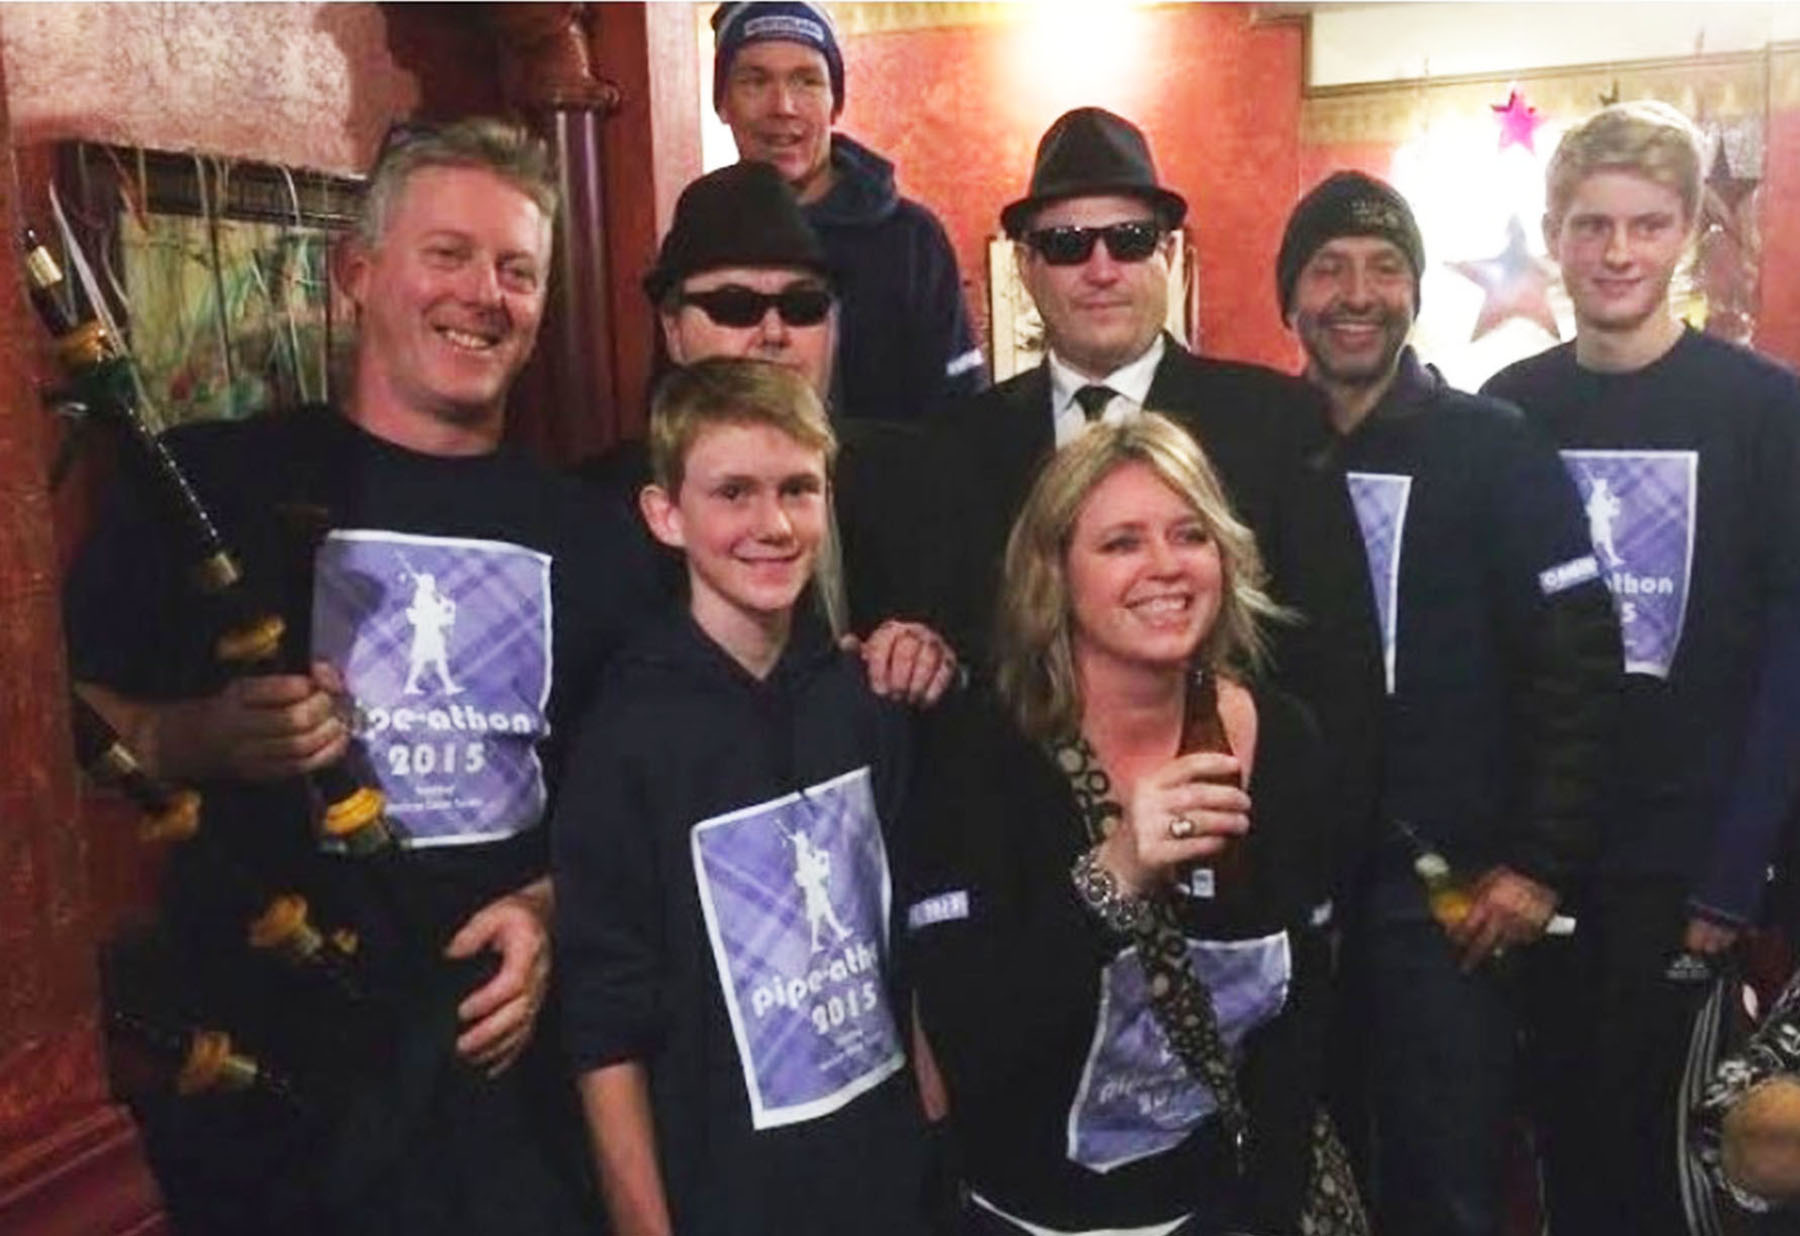 """Andy MacKay  Andy MacKay, far left, and Team Pipe-A-Thon members Joe """"Jake Blues"""" Donohoe, Jamie """"Elwood Blues"""" Eckmier, Ron """"The Collector"""" Manabat, Rod """"Tarantino"""" Ortiz, Ken """"Fittipaldi"""" Johnson thank the community for its generosity on New Year's Eve."""